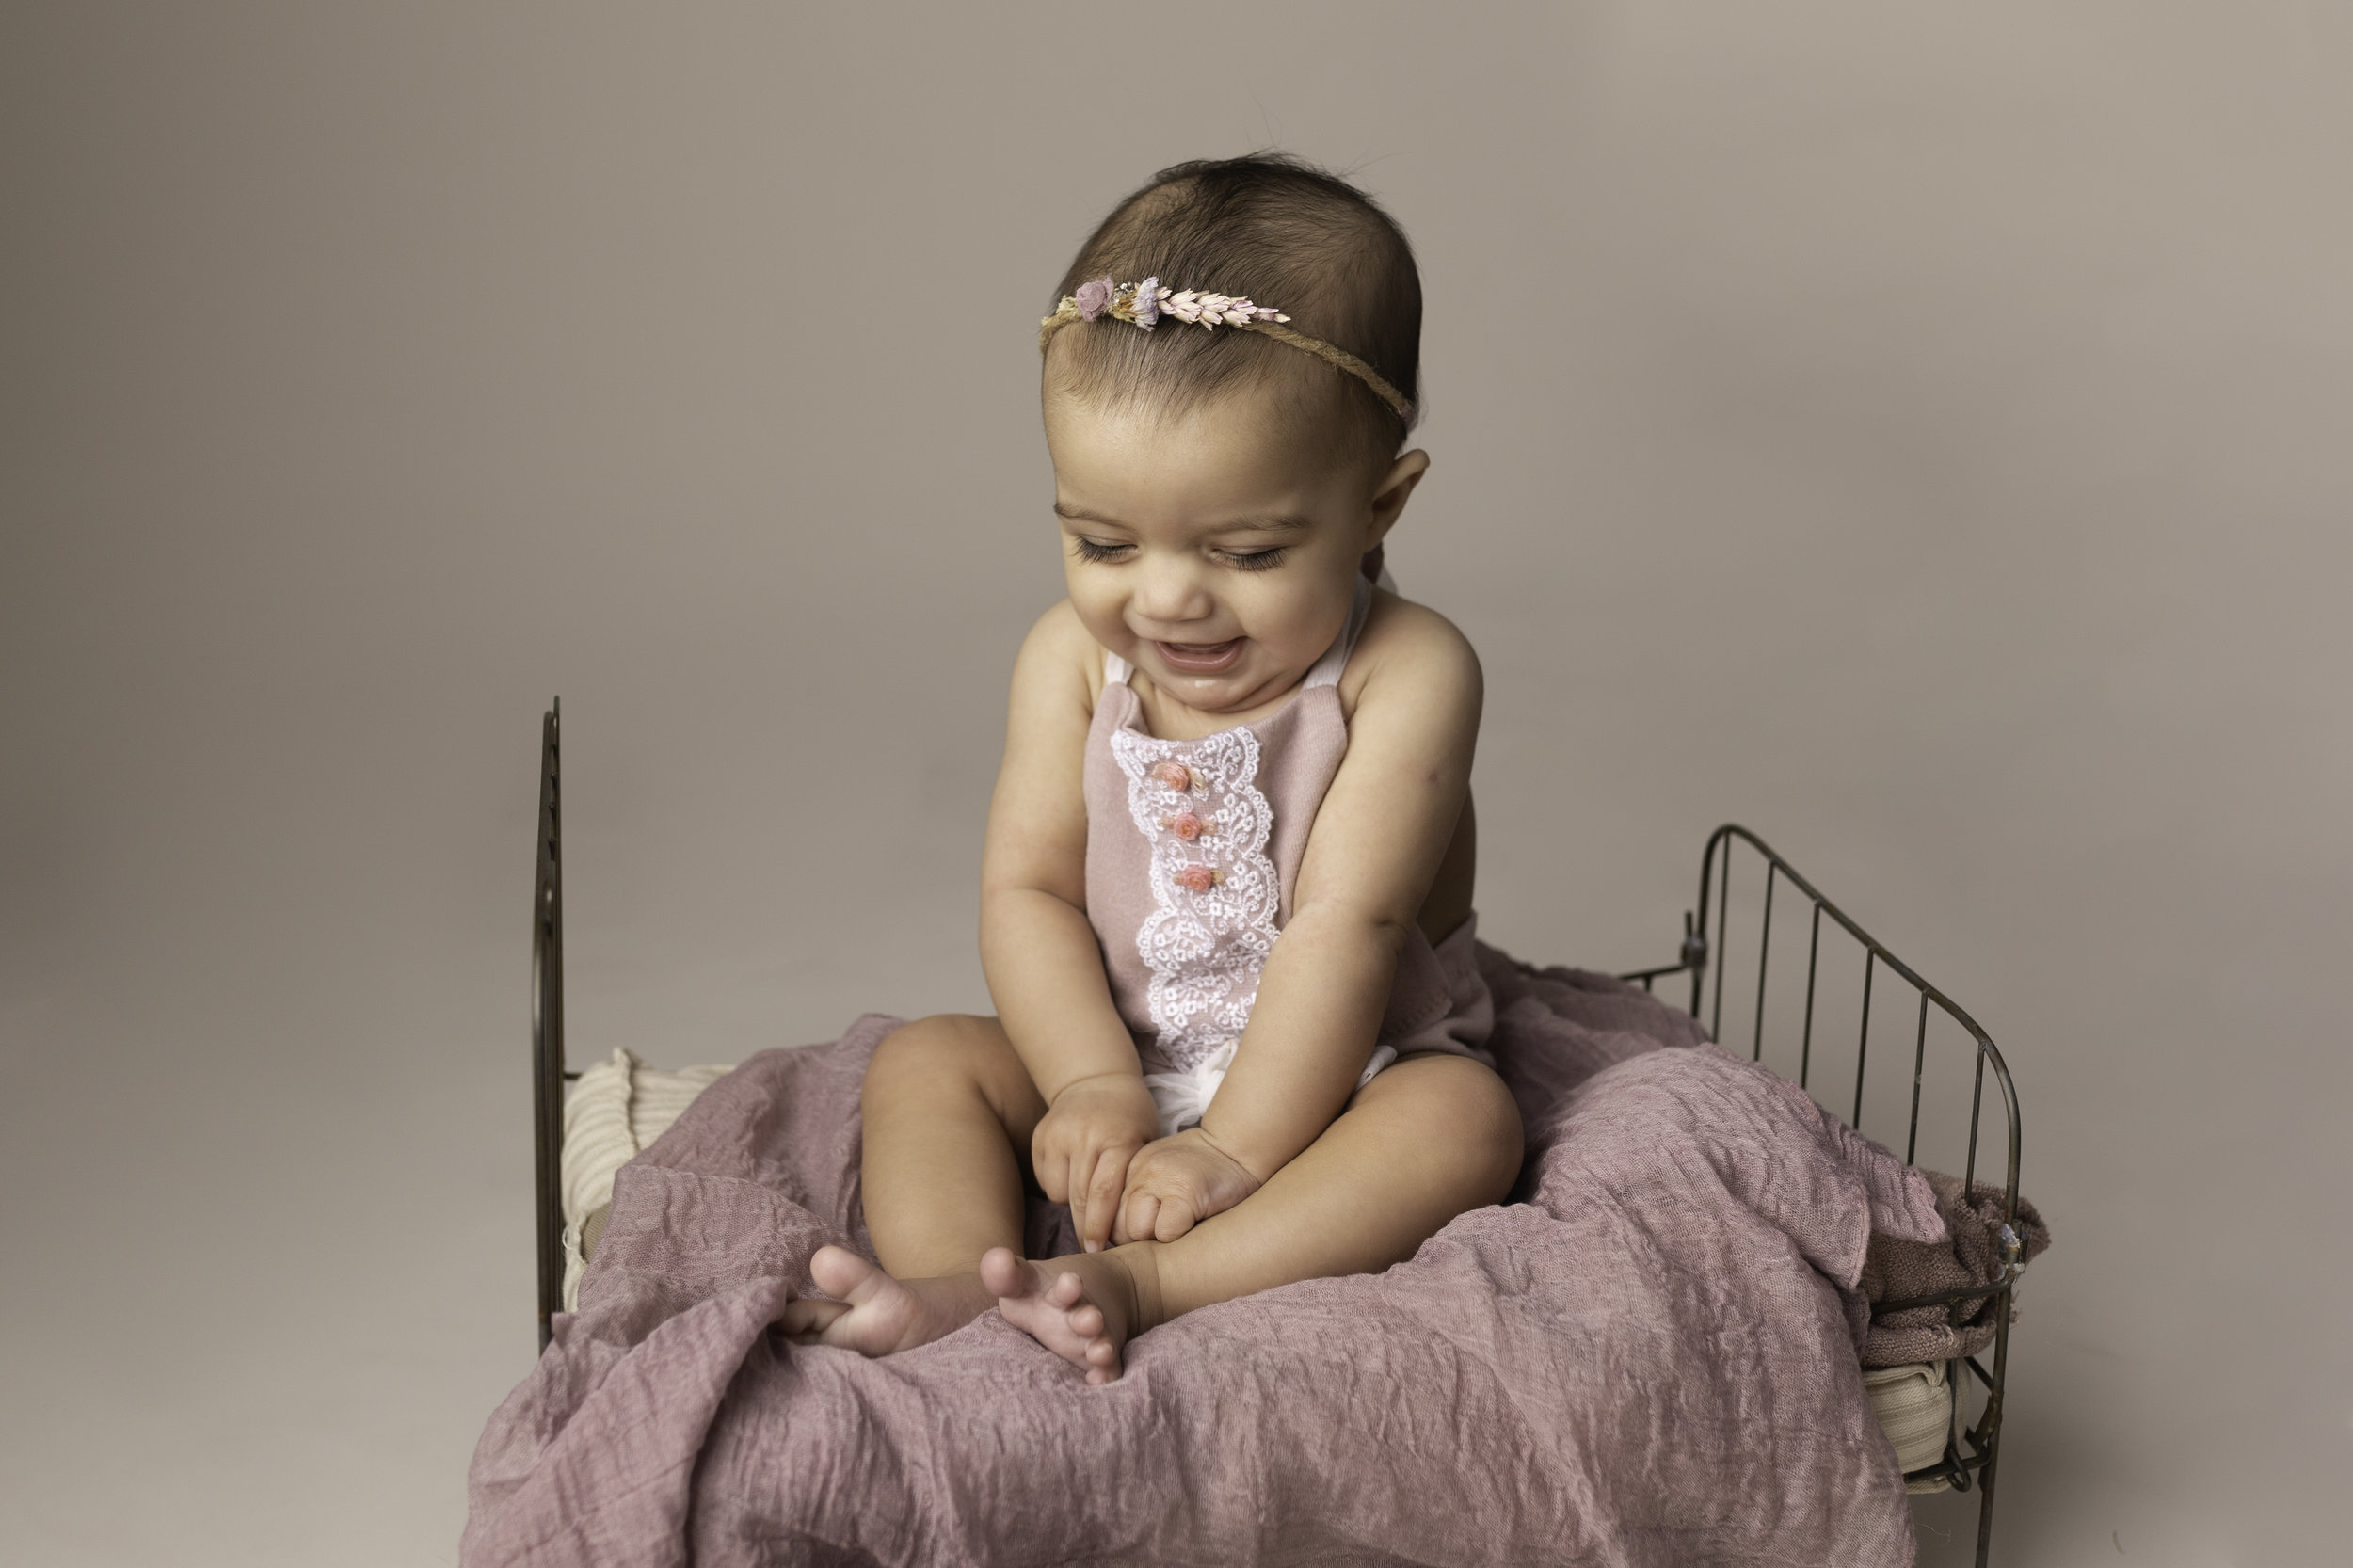 Lea-cooper-photography-childrens-photographer-portrait-session-sitter-session-6-months-old-photos-willenhall-wolverahmpton-birmingham-west-midlands-uk-6.jpg